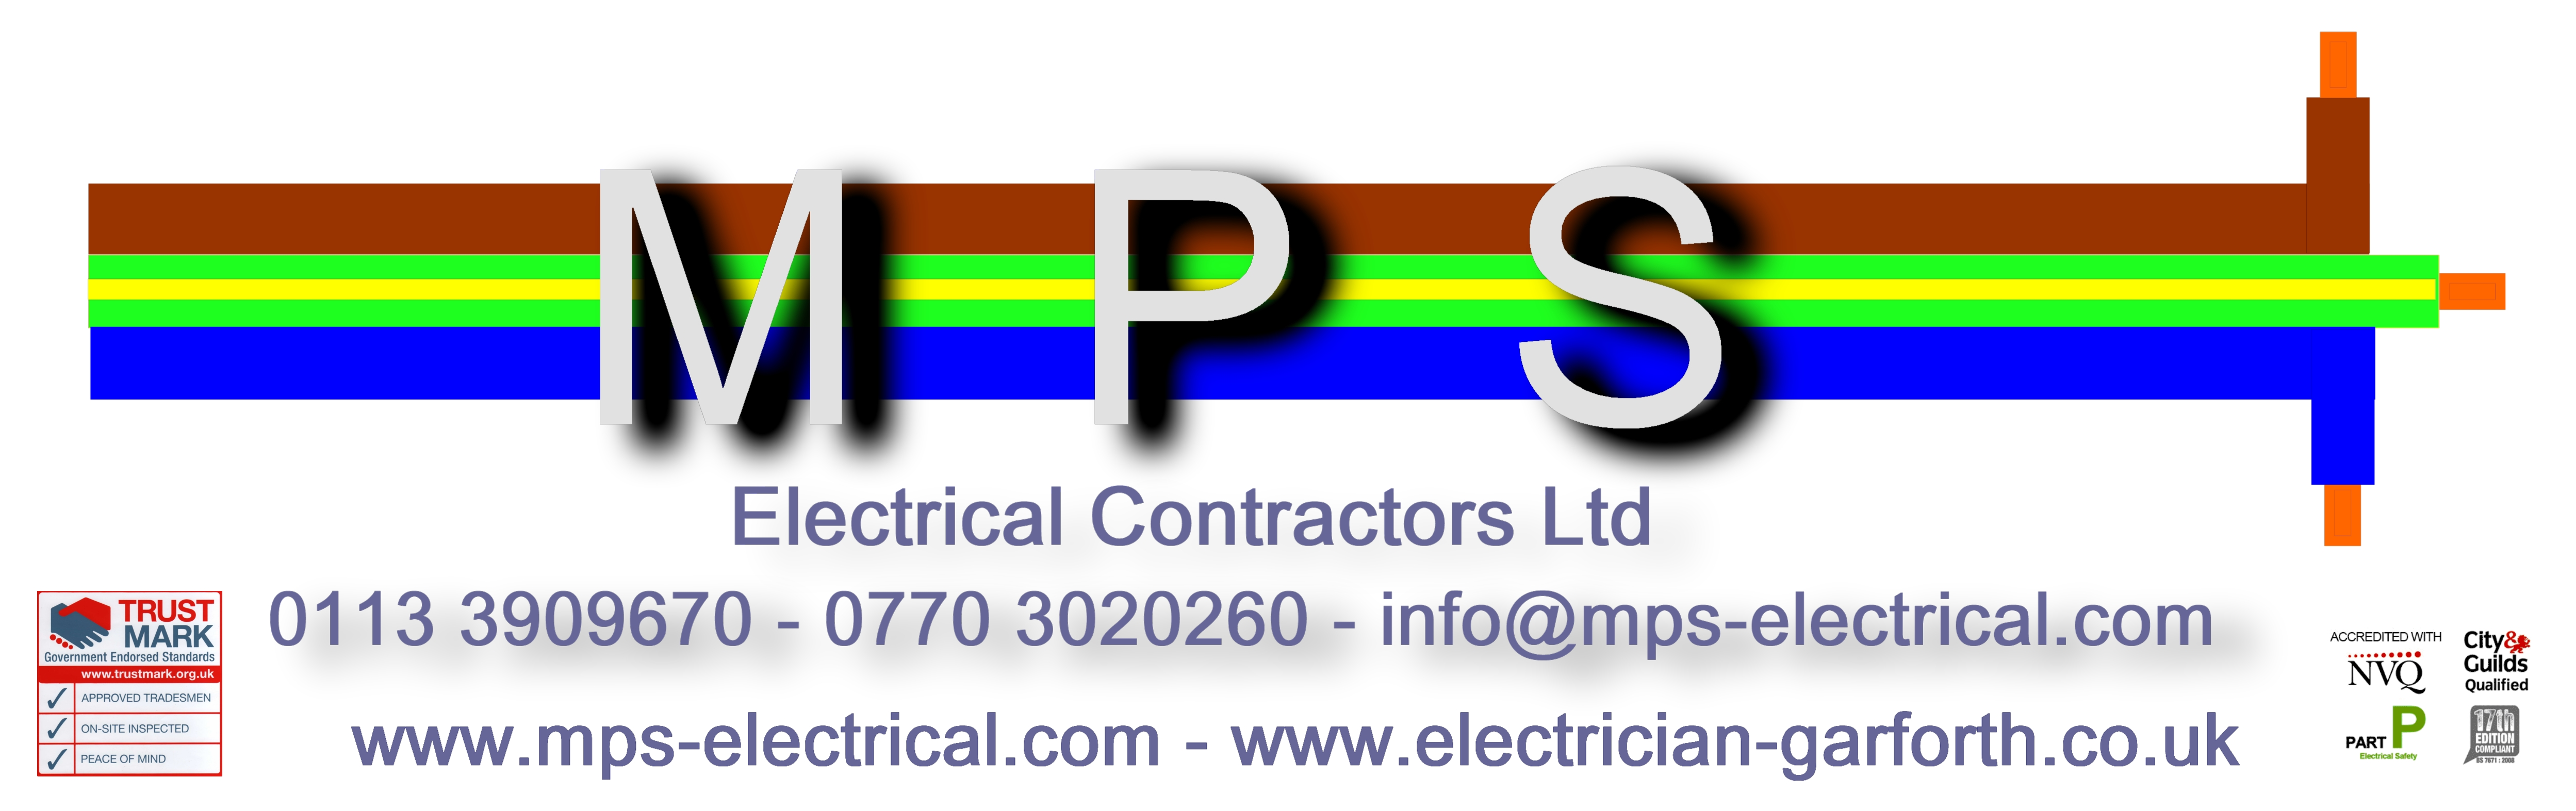 Electrician Garforth Leeds MPS Electrical Ltd 0113 3909670